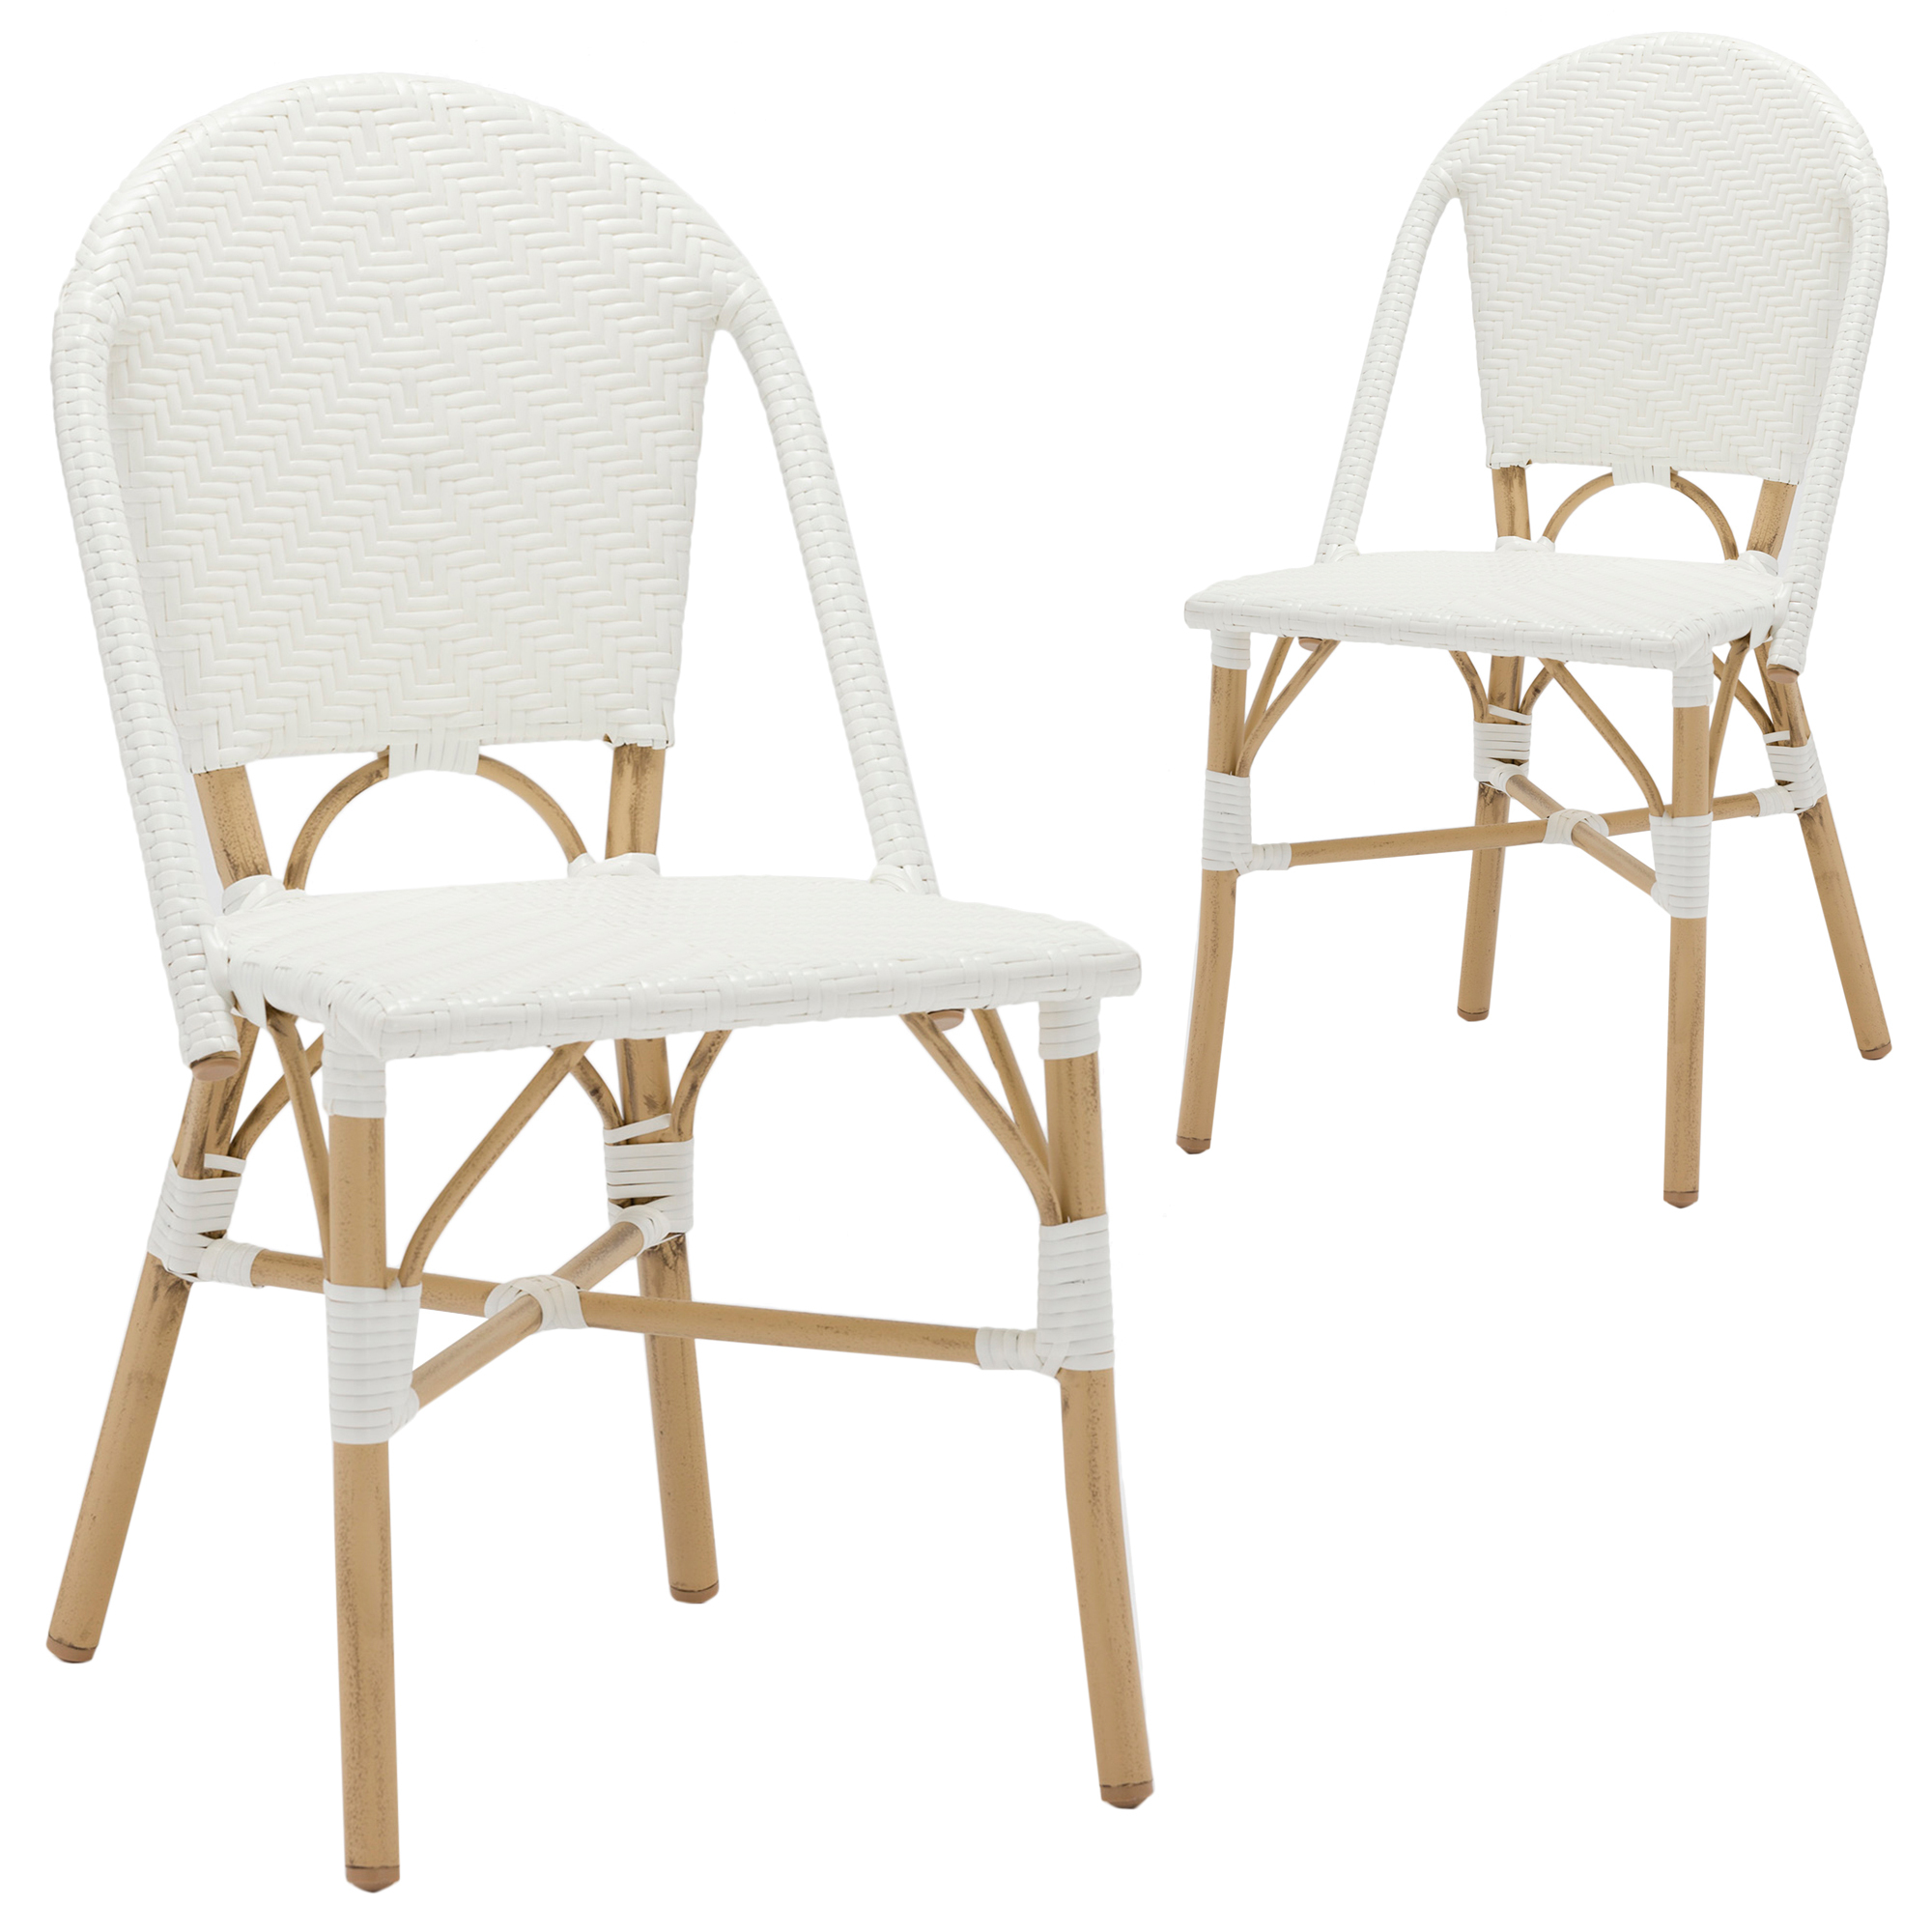 New set of 2 white paris pe rattan cafe dining chairs ebay - White wicker bathroom accessories ...